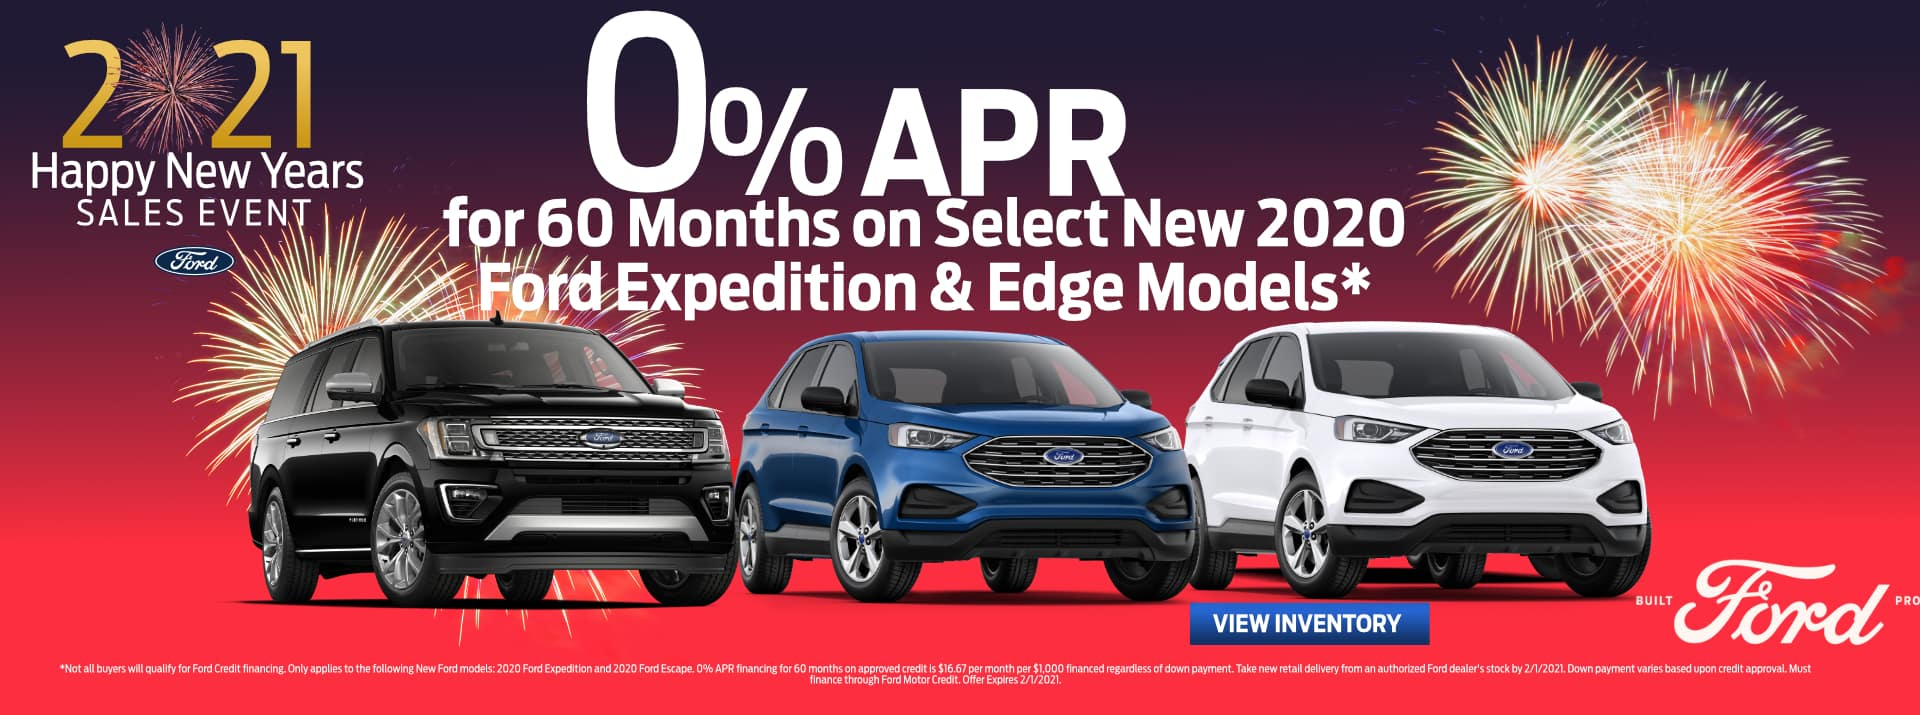 January-2021 Ford Expedition&Edge GENERAL Palm Springs FORD